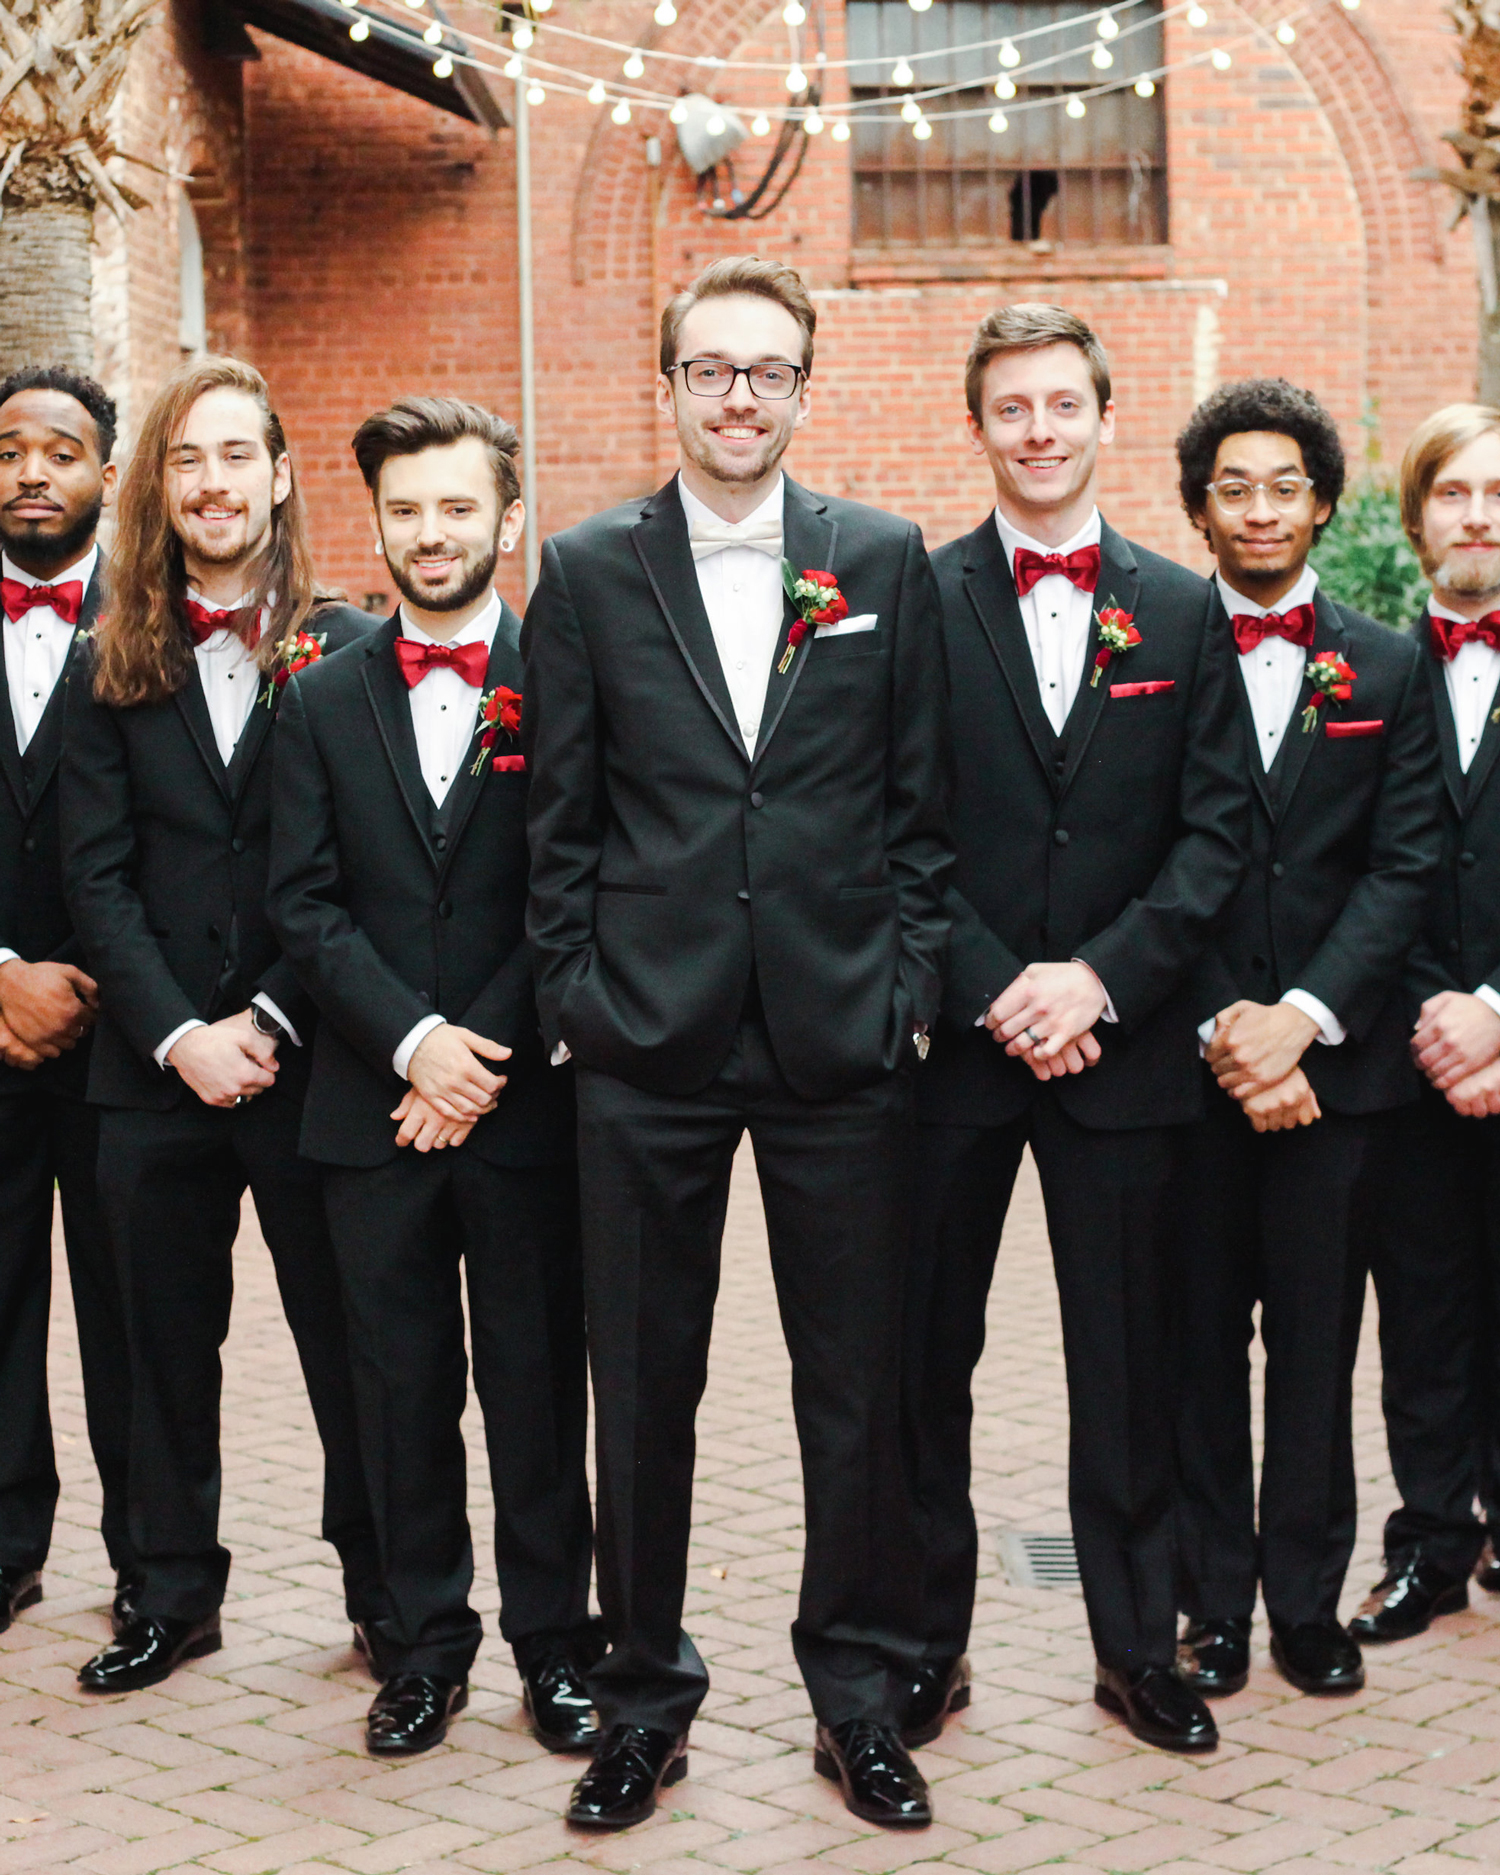 elizabeth seth wedding groom with groomsmen